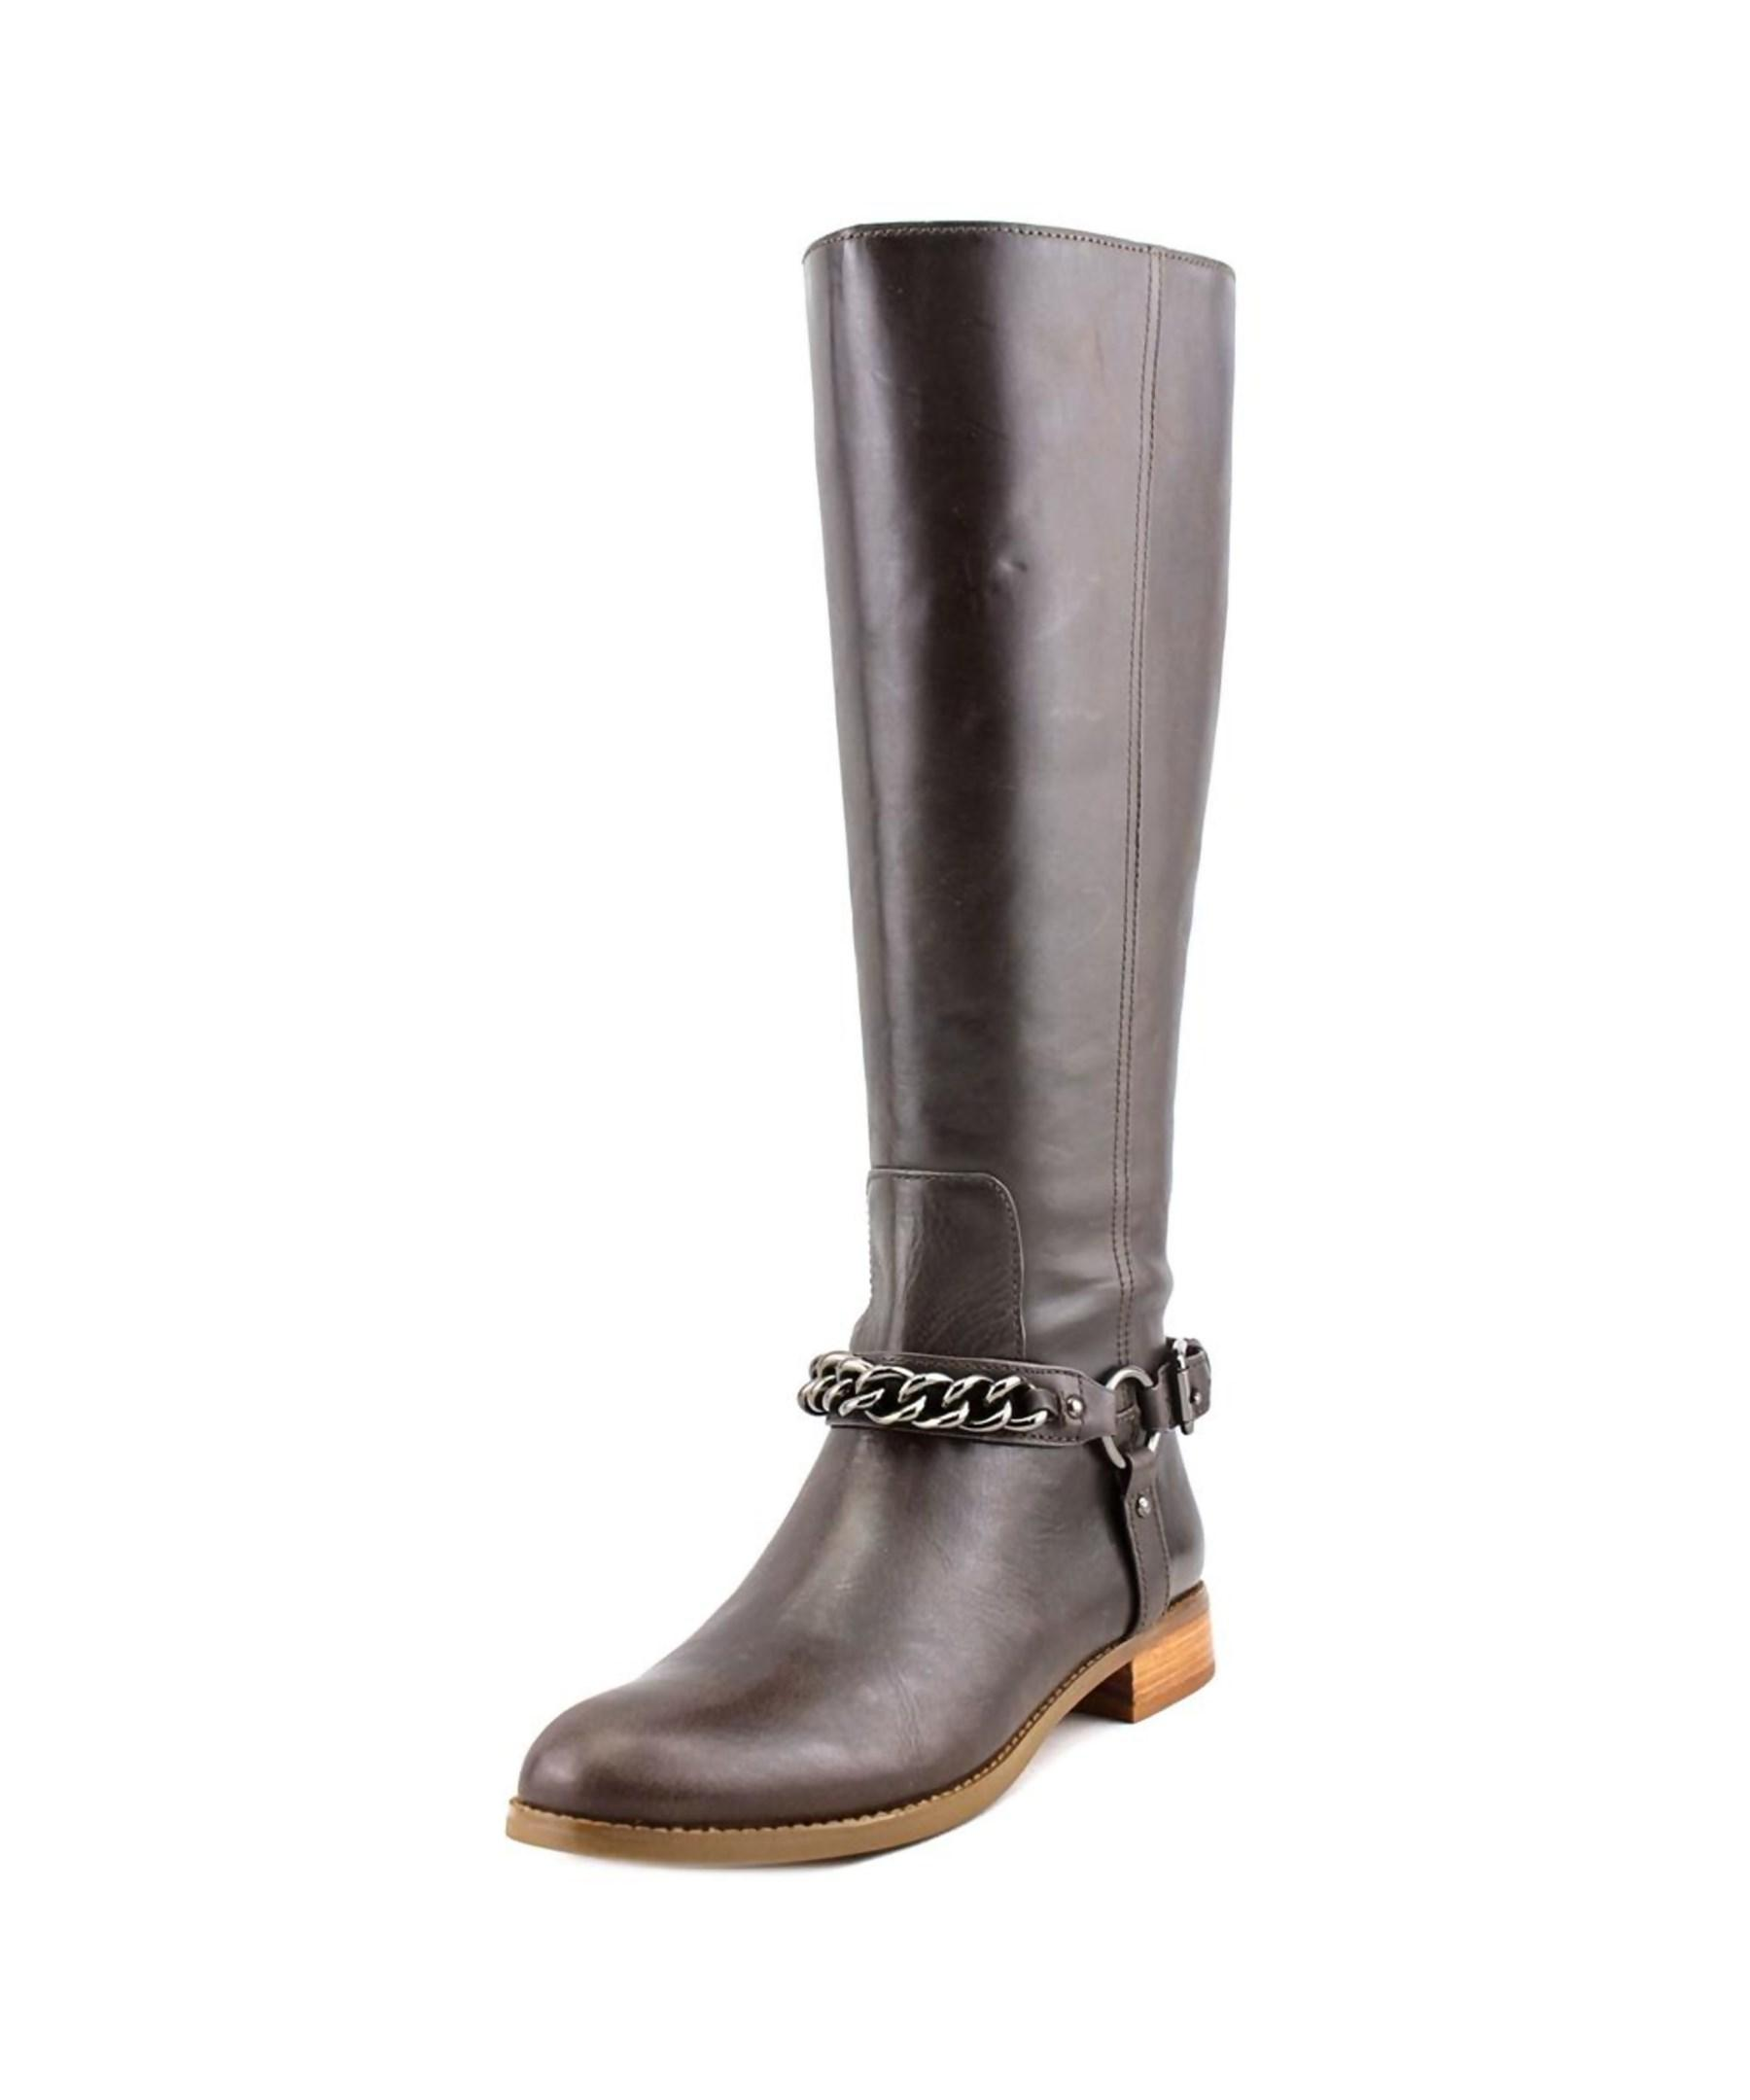 coach mabel toe leather knee high boot in brown lyst